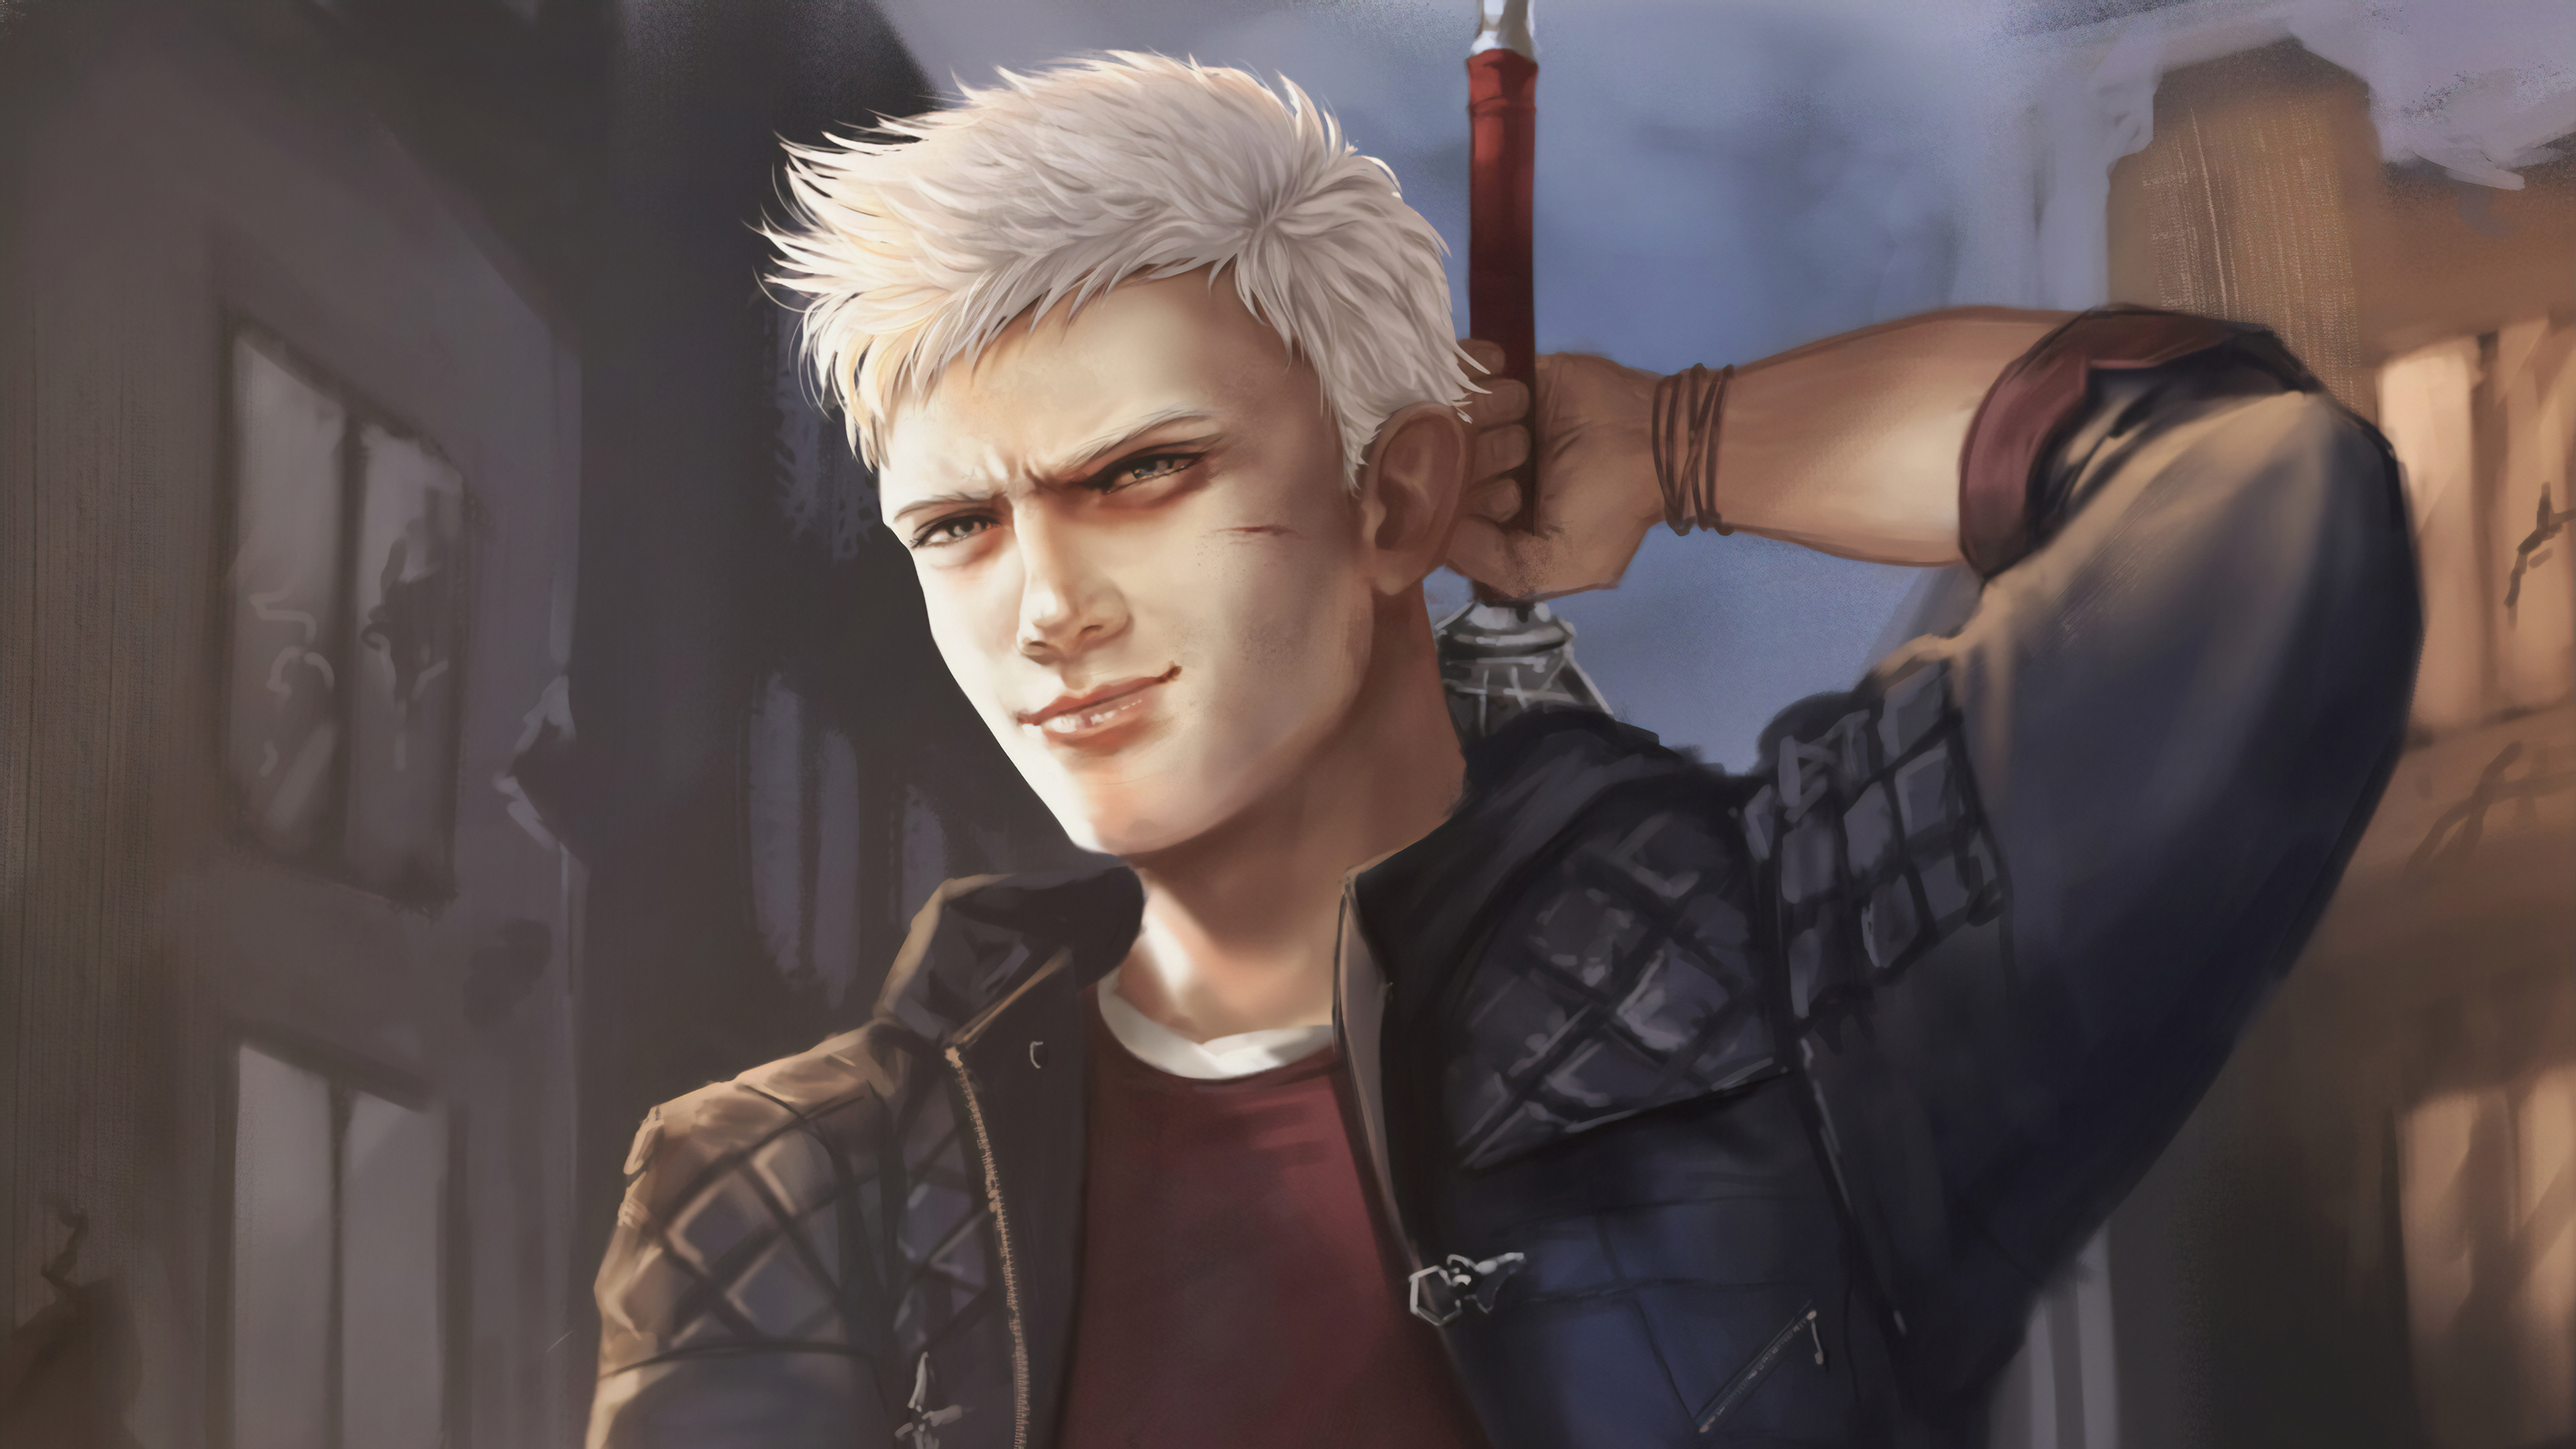 devil maycry 5 1568056774 - Devil Maycry 5 - hd-wallpapers, games wallpapers, devil may cry 5 wallpapers, artstation wallpapers, 4k-wallpapers, 2019 games wallpapers